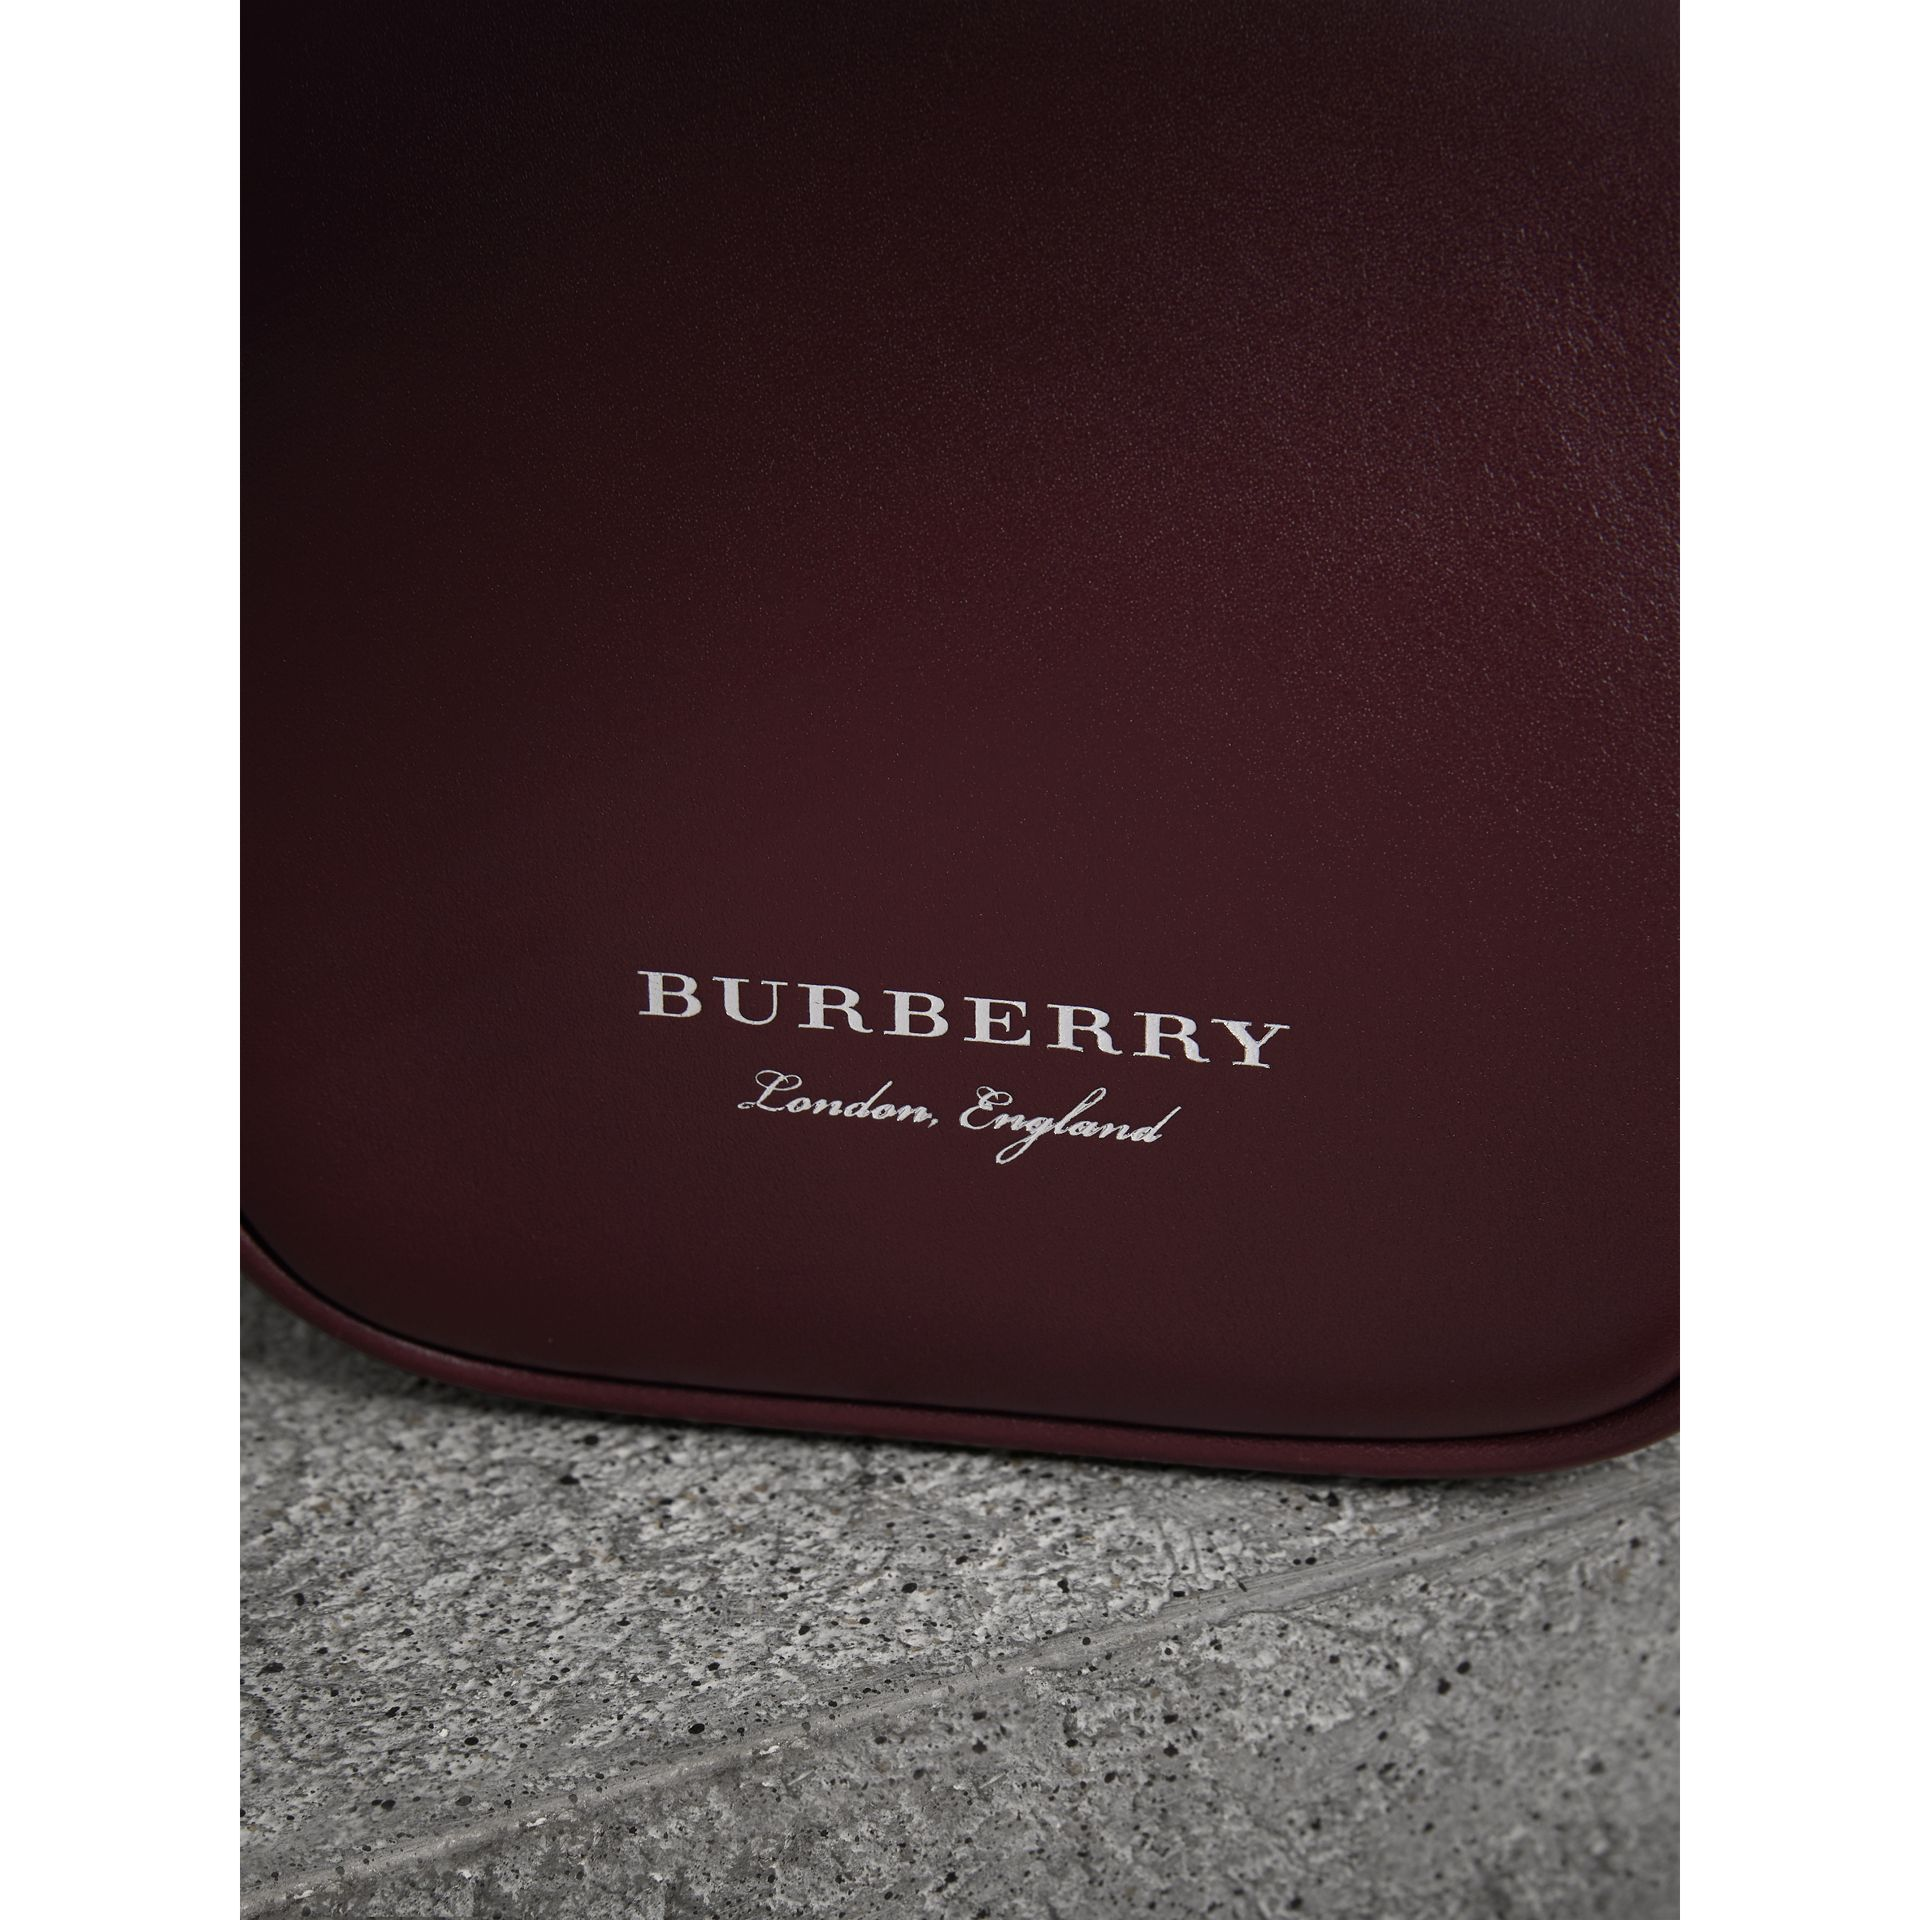 Mini Two-tone Leather Frame Bag in Burgundy - Women | Burberry - gallery image 1